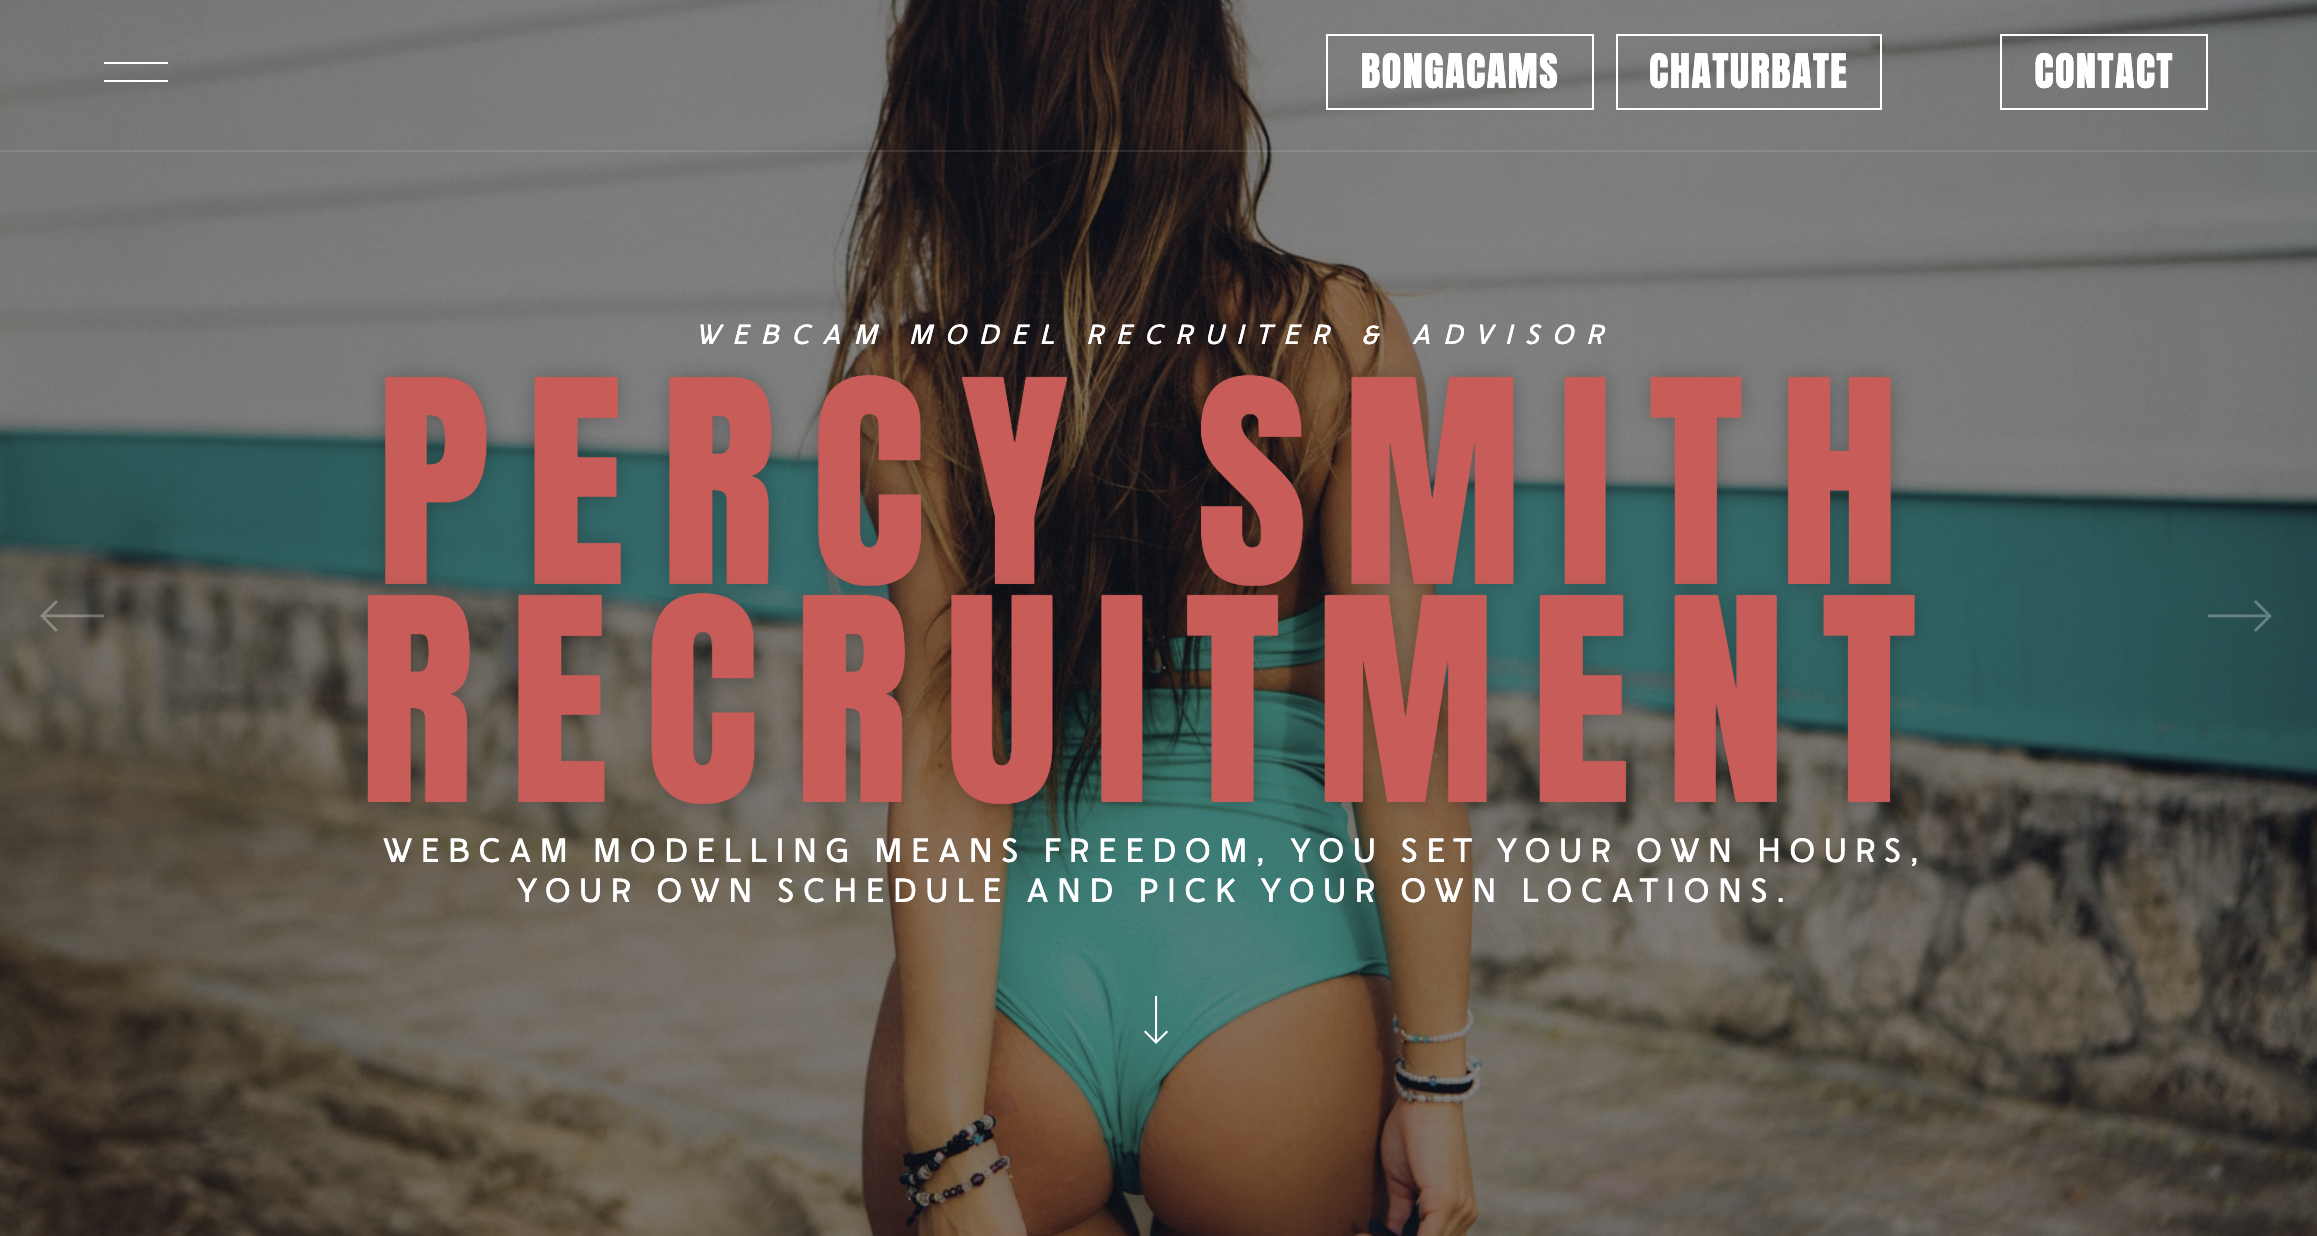 An image of the web and logo design for Percy Smith Recruitment